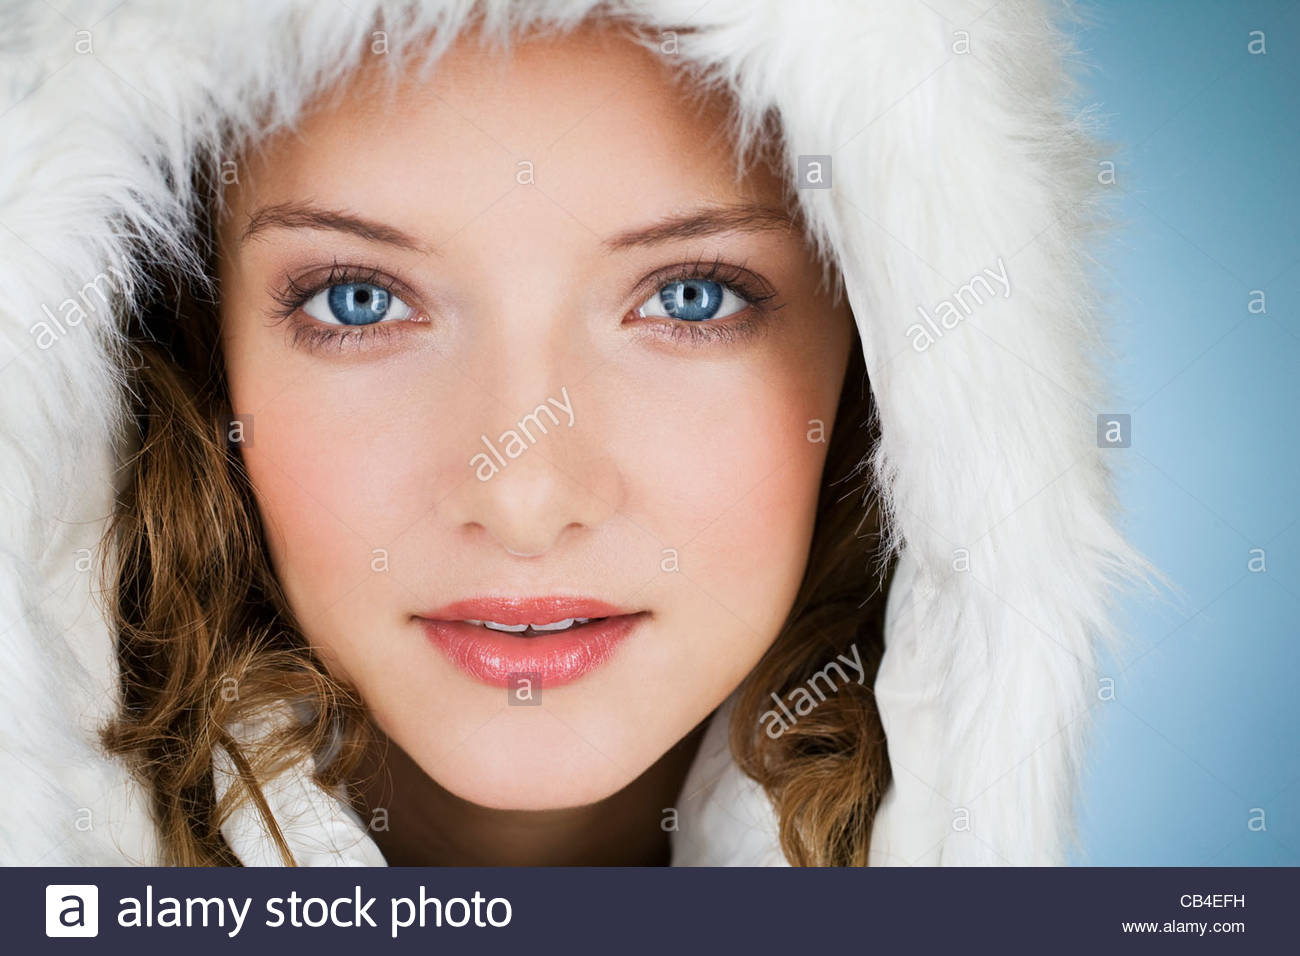 A young woman wearing a winter coat with a fur hood, close-up - Stock Image